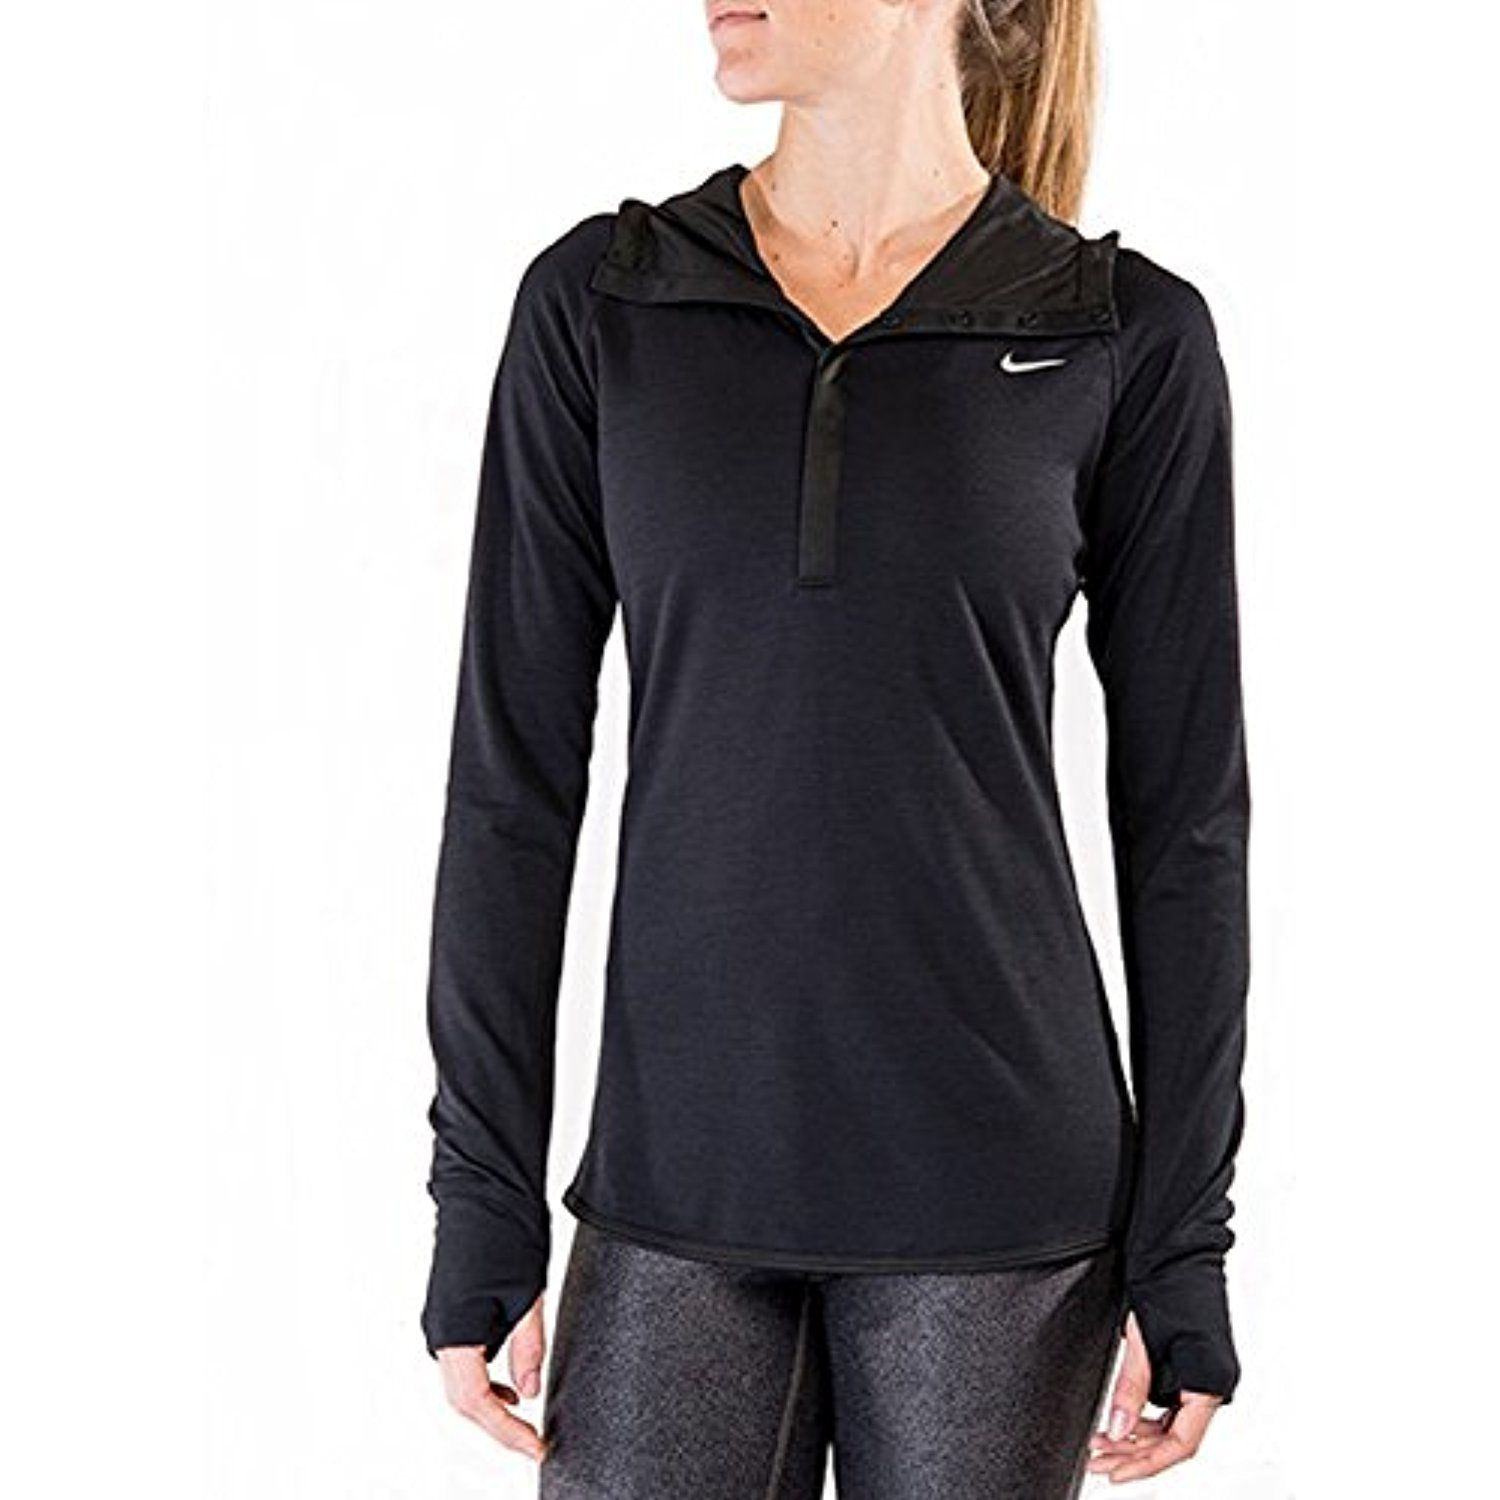 Nike Women S Dri Fit Wool Running Hoodie Eggplant To View Further For This Item Visit The Image Link This Is An Affilia Running Hoodie Nike Women Hoodies Email me when it's back. dri fit wool running hoodie eggplant